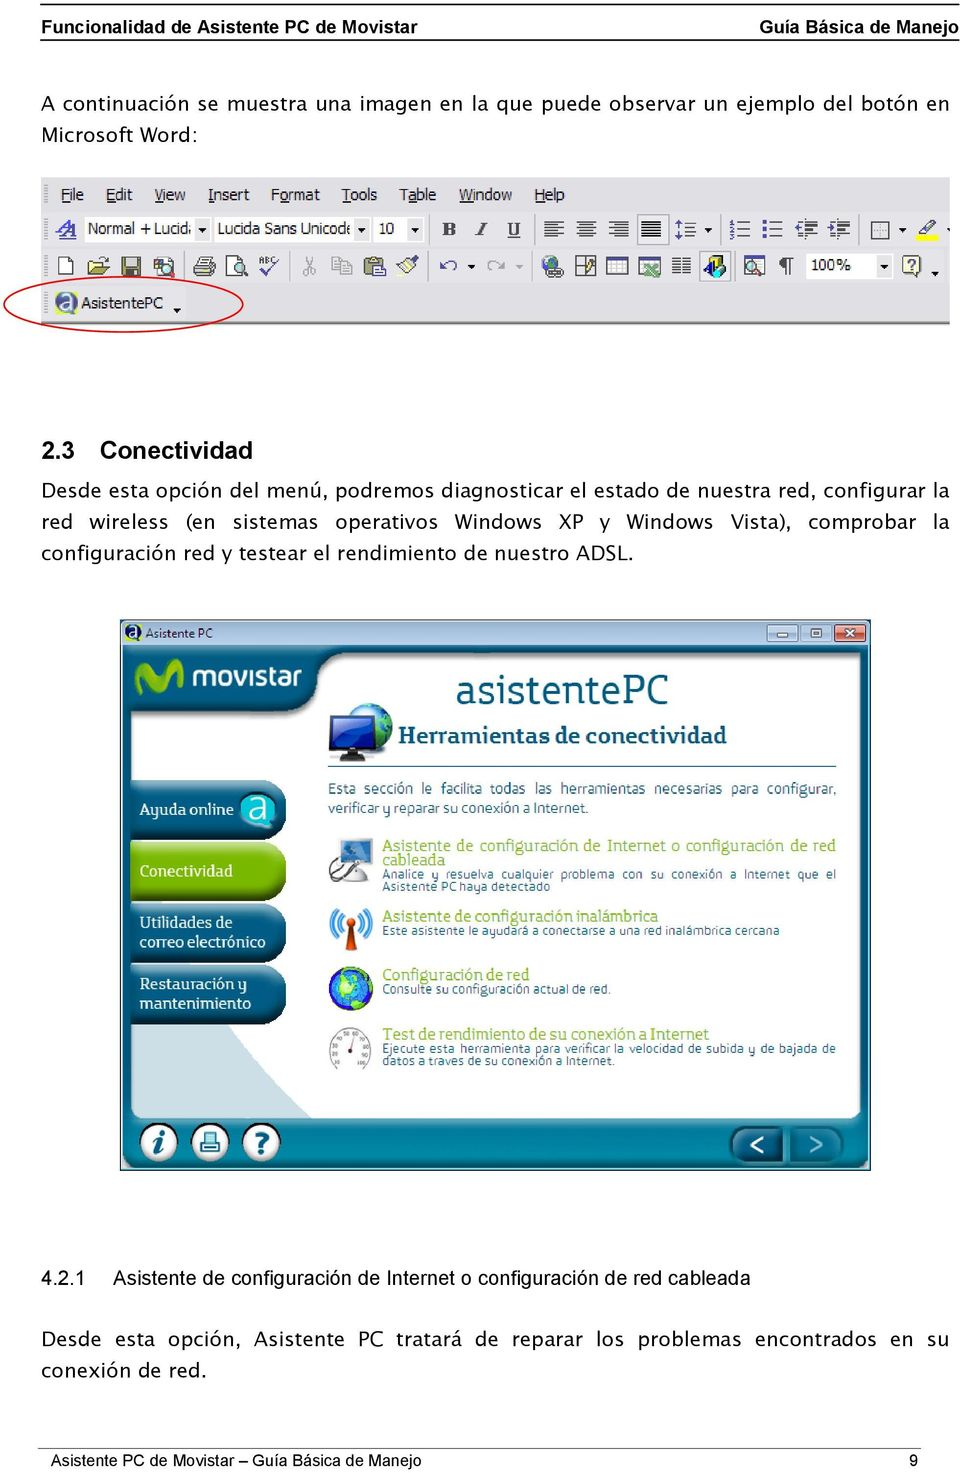 operativos Windows XP y Windows Vista), comprobar la configuración red y testear el rendimiento de nuestro ADSL. 4.2.